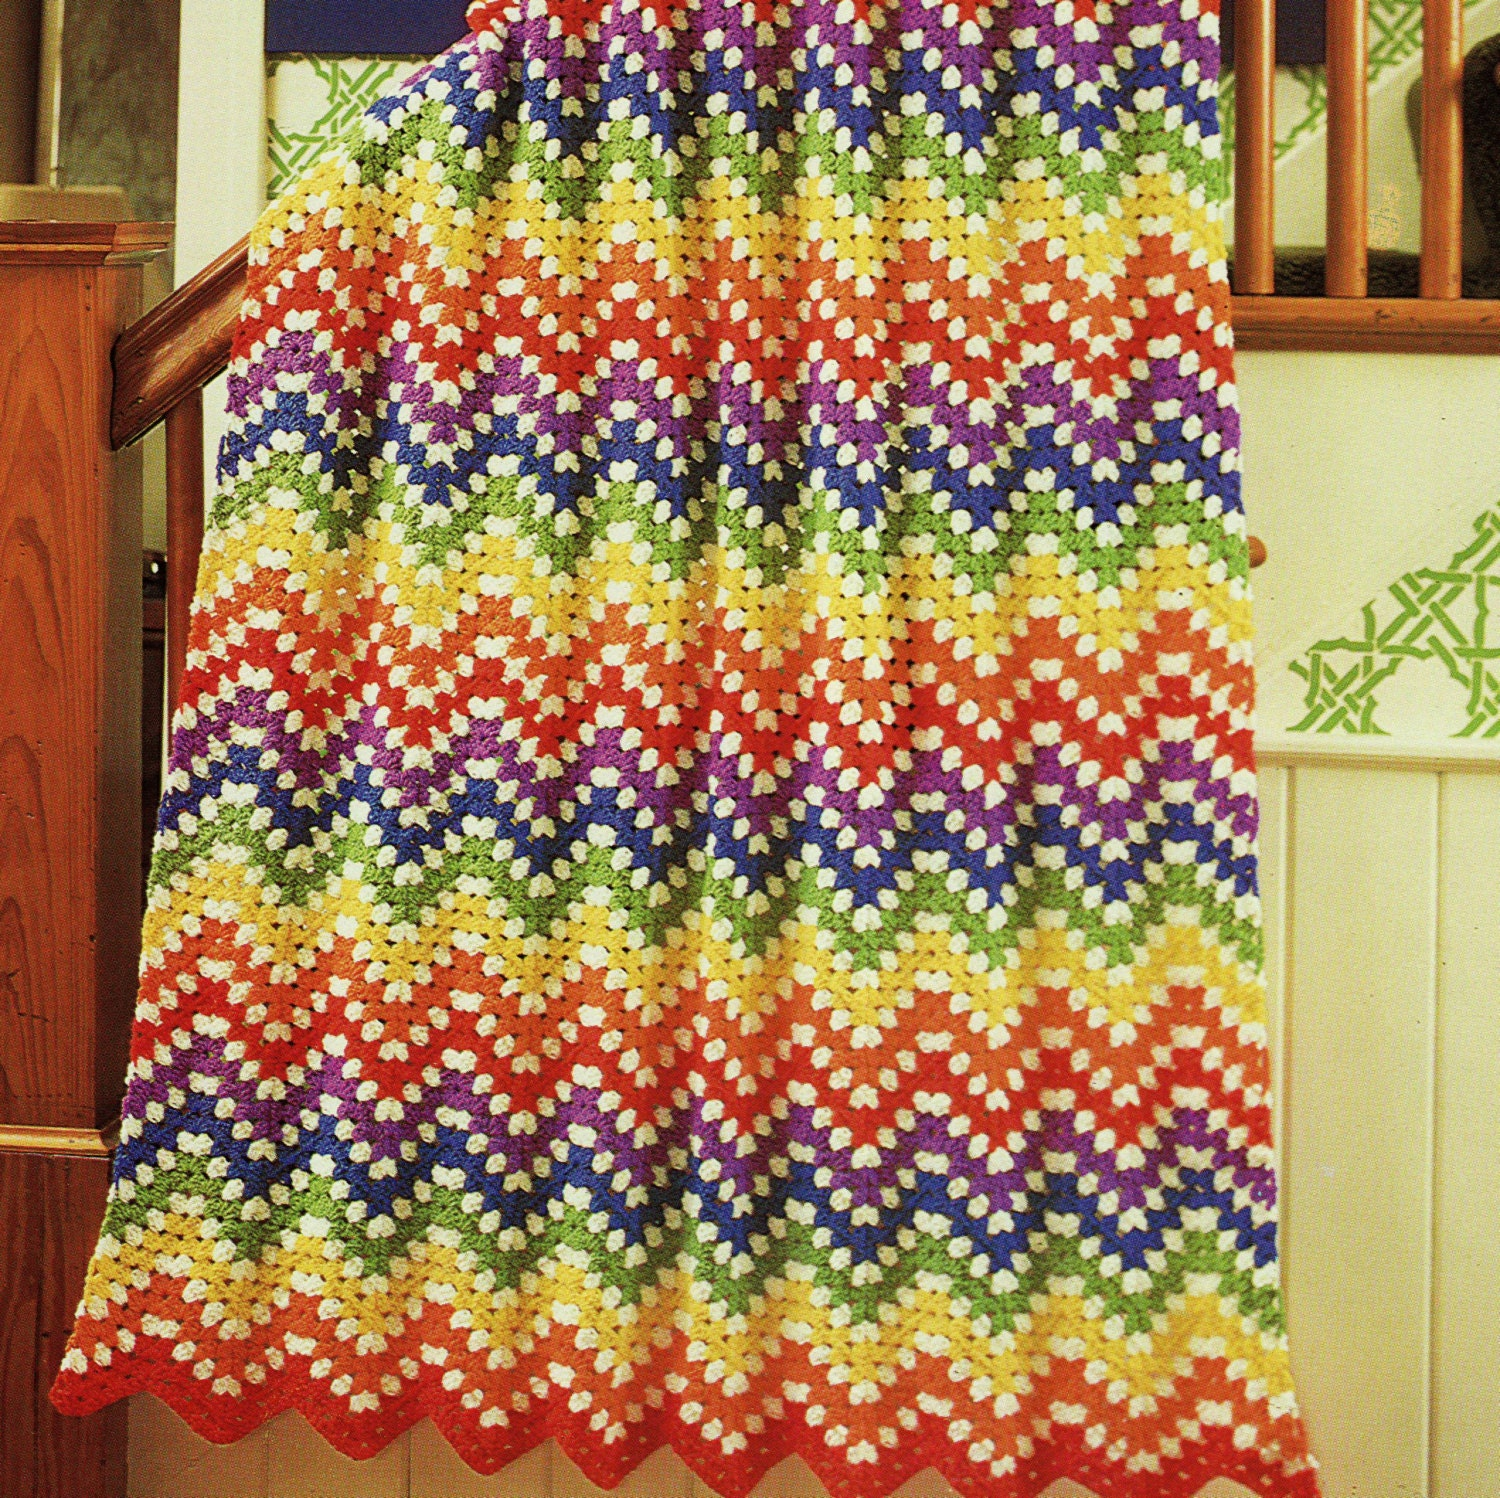 INSTANY DOWNLOAD PDF Vintage Crochet Pattern for Rainbow